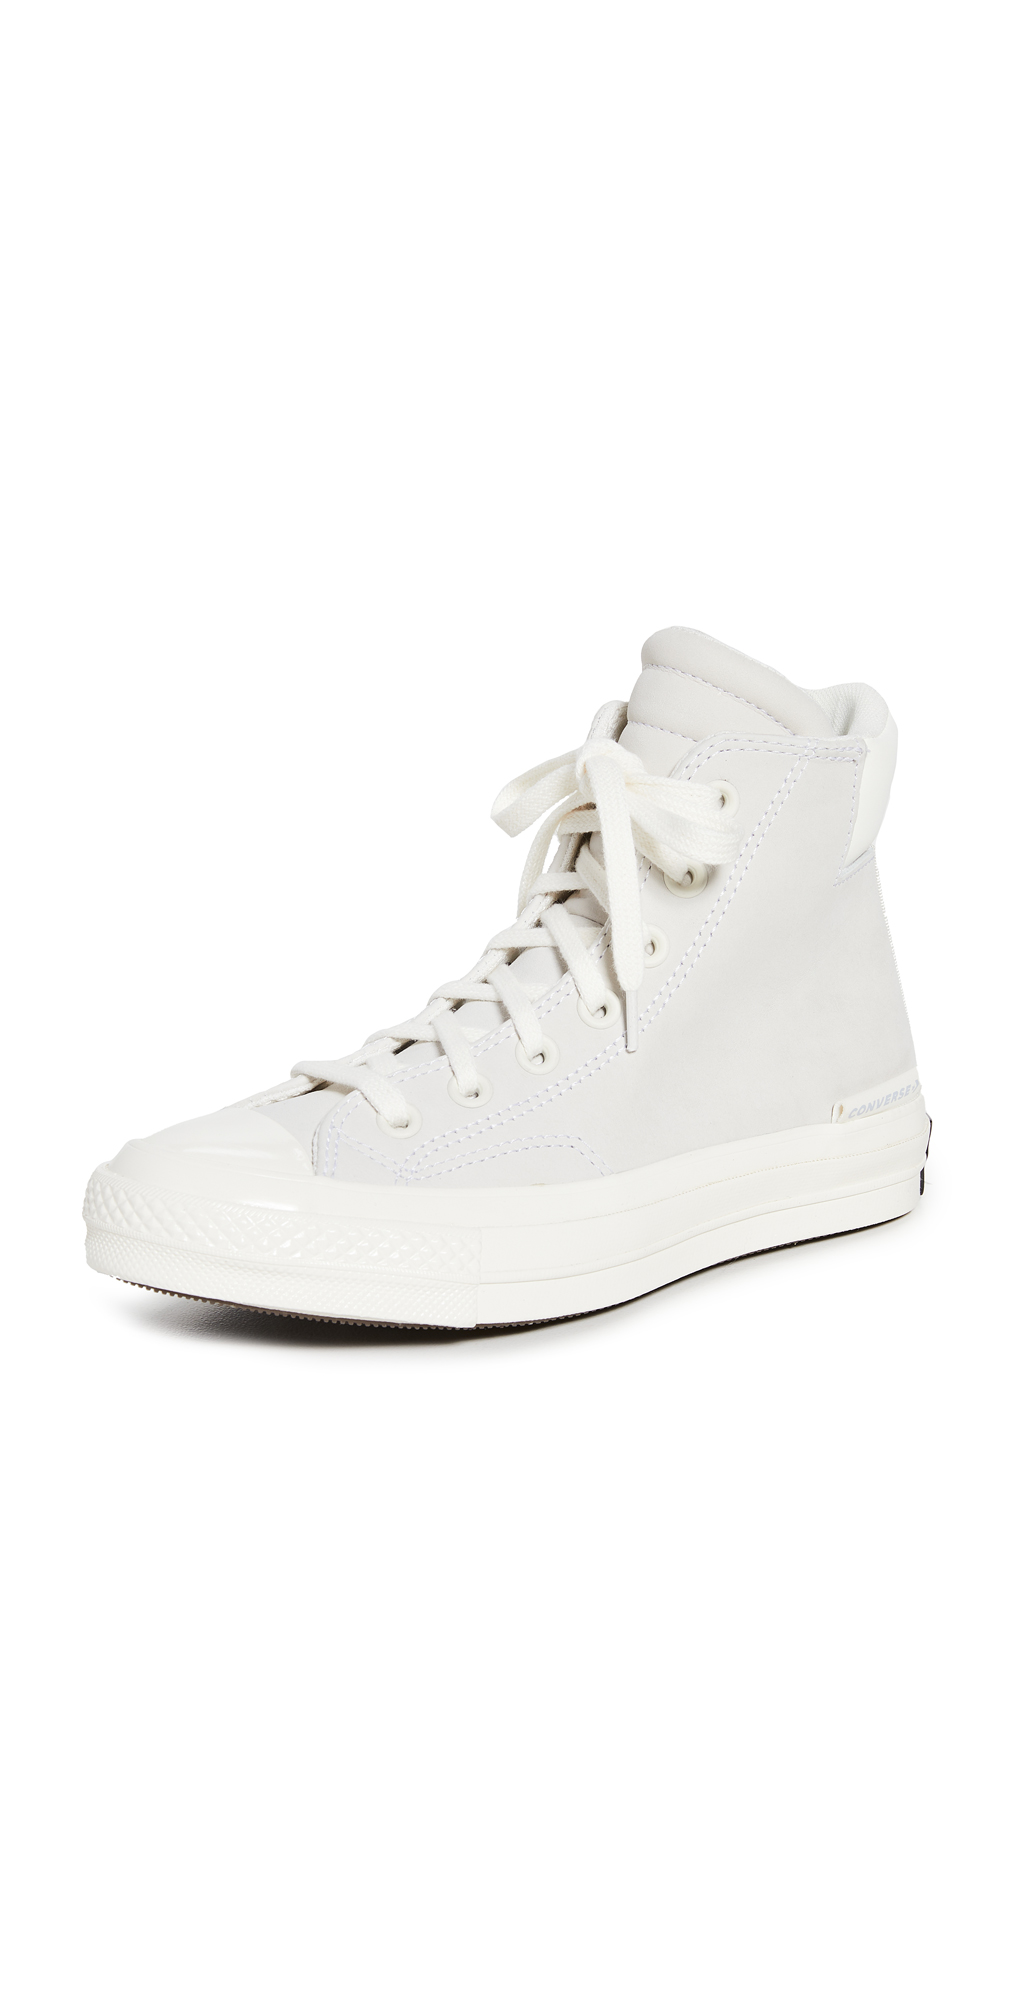 Converse Chuck 70 Padded Collar High Top Sneakers